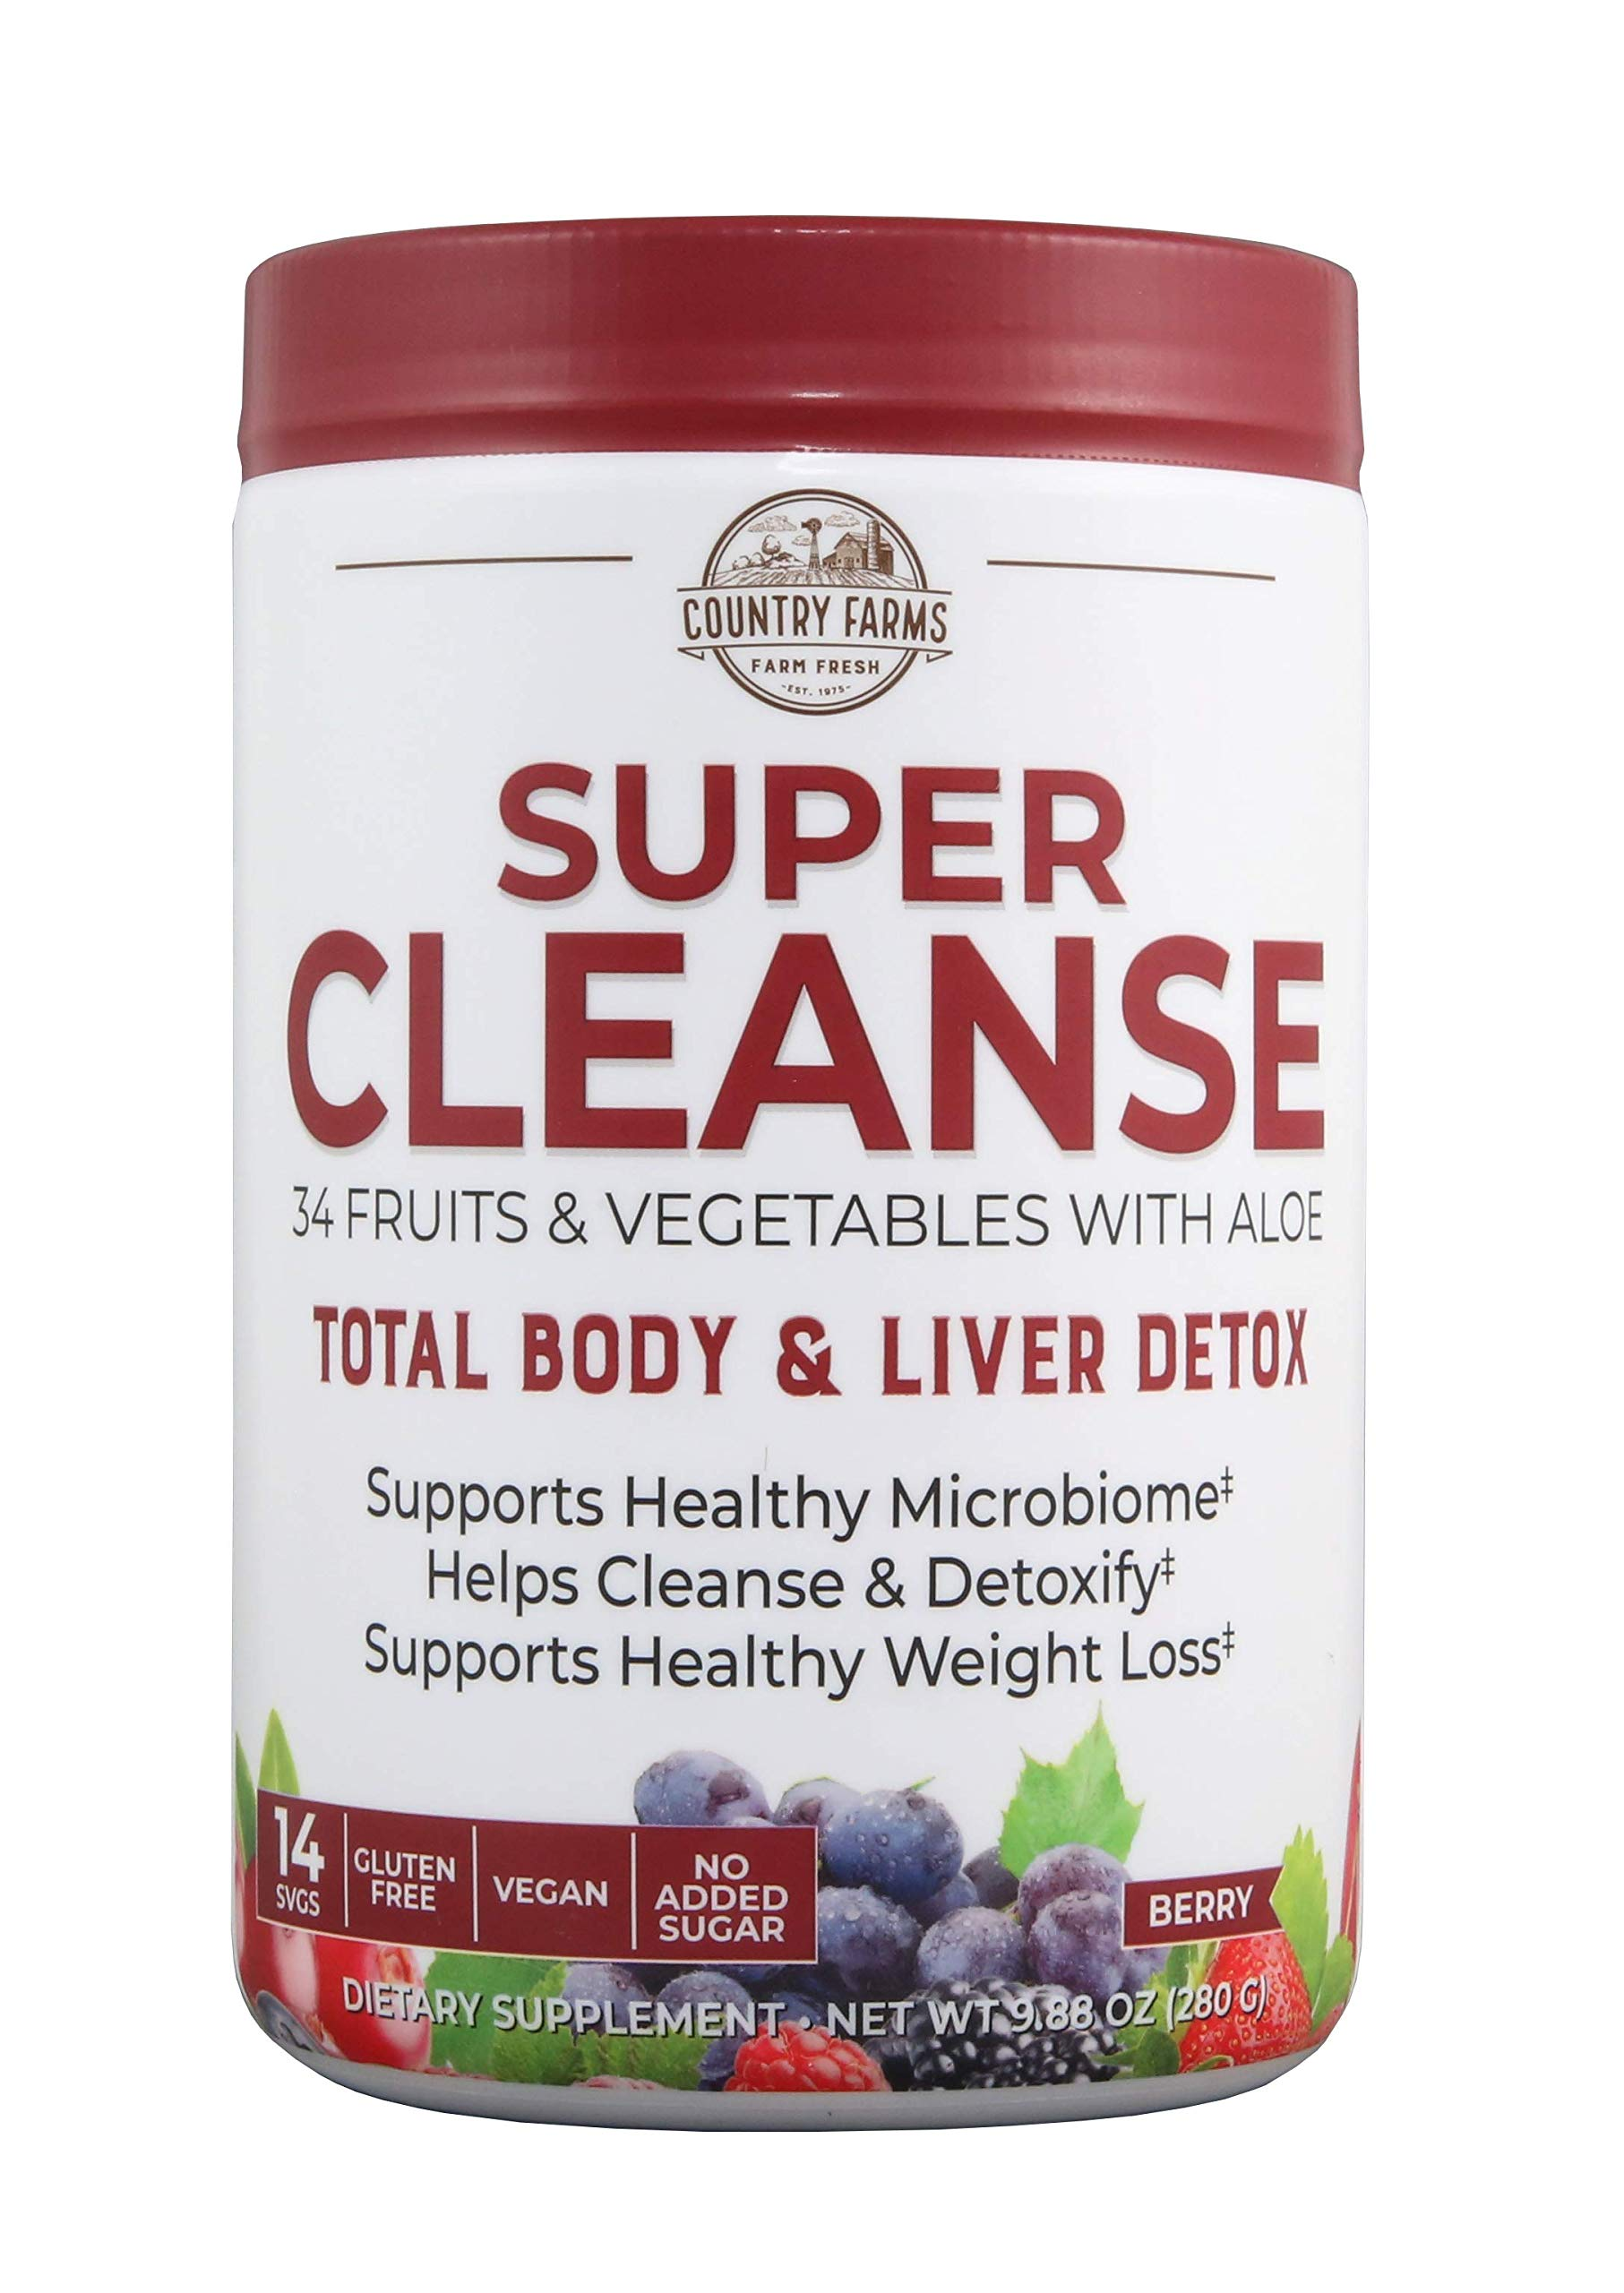 Country Farms Super Cleanse, Organic Super Juice Cleanse, Delicious Drink Powder, 14 Servings, 9.88 Oz (Packaging May Vary)